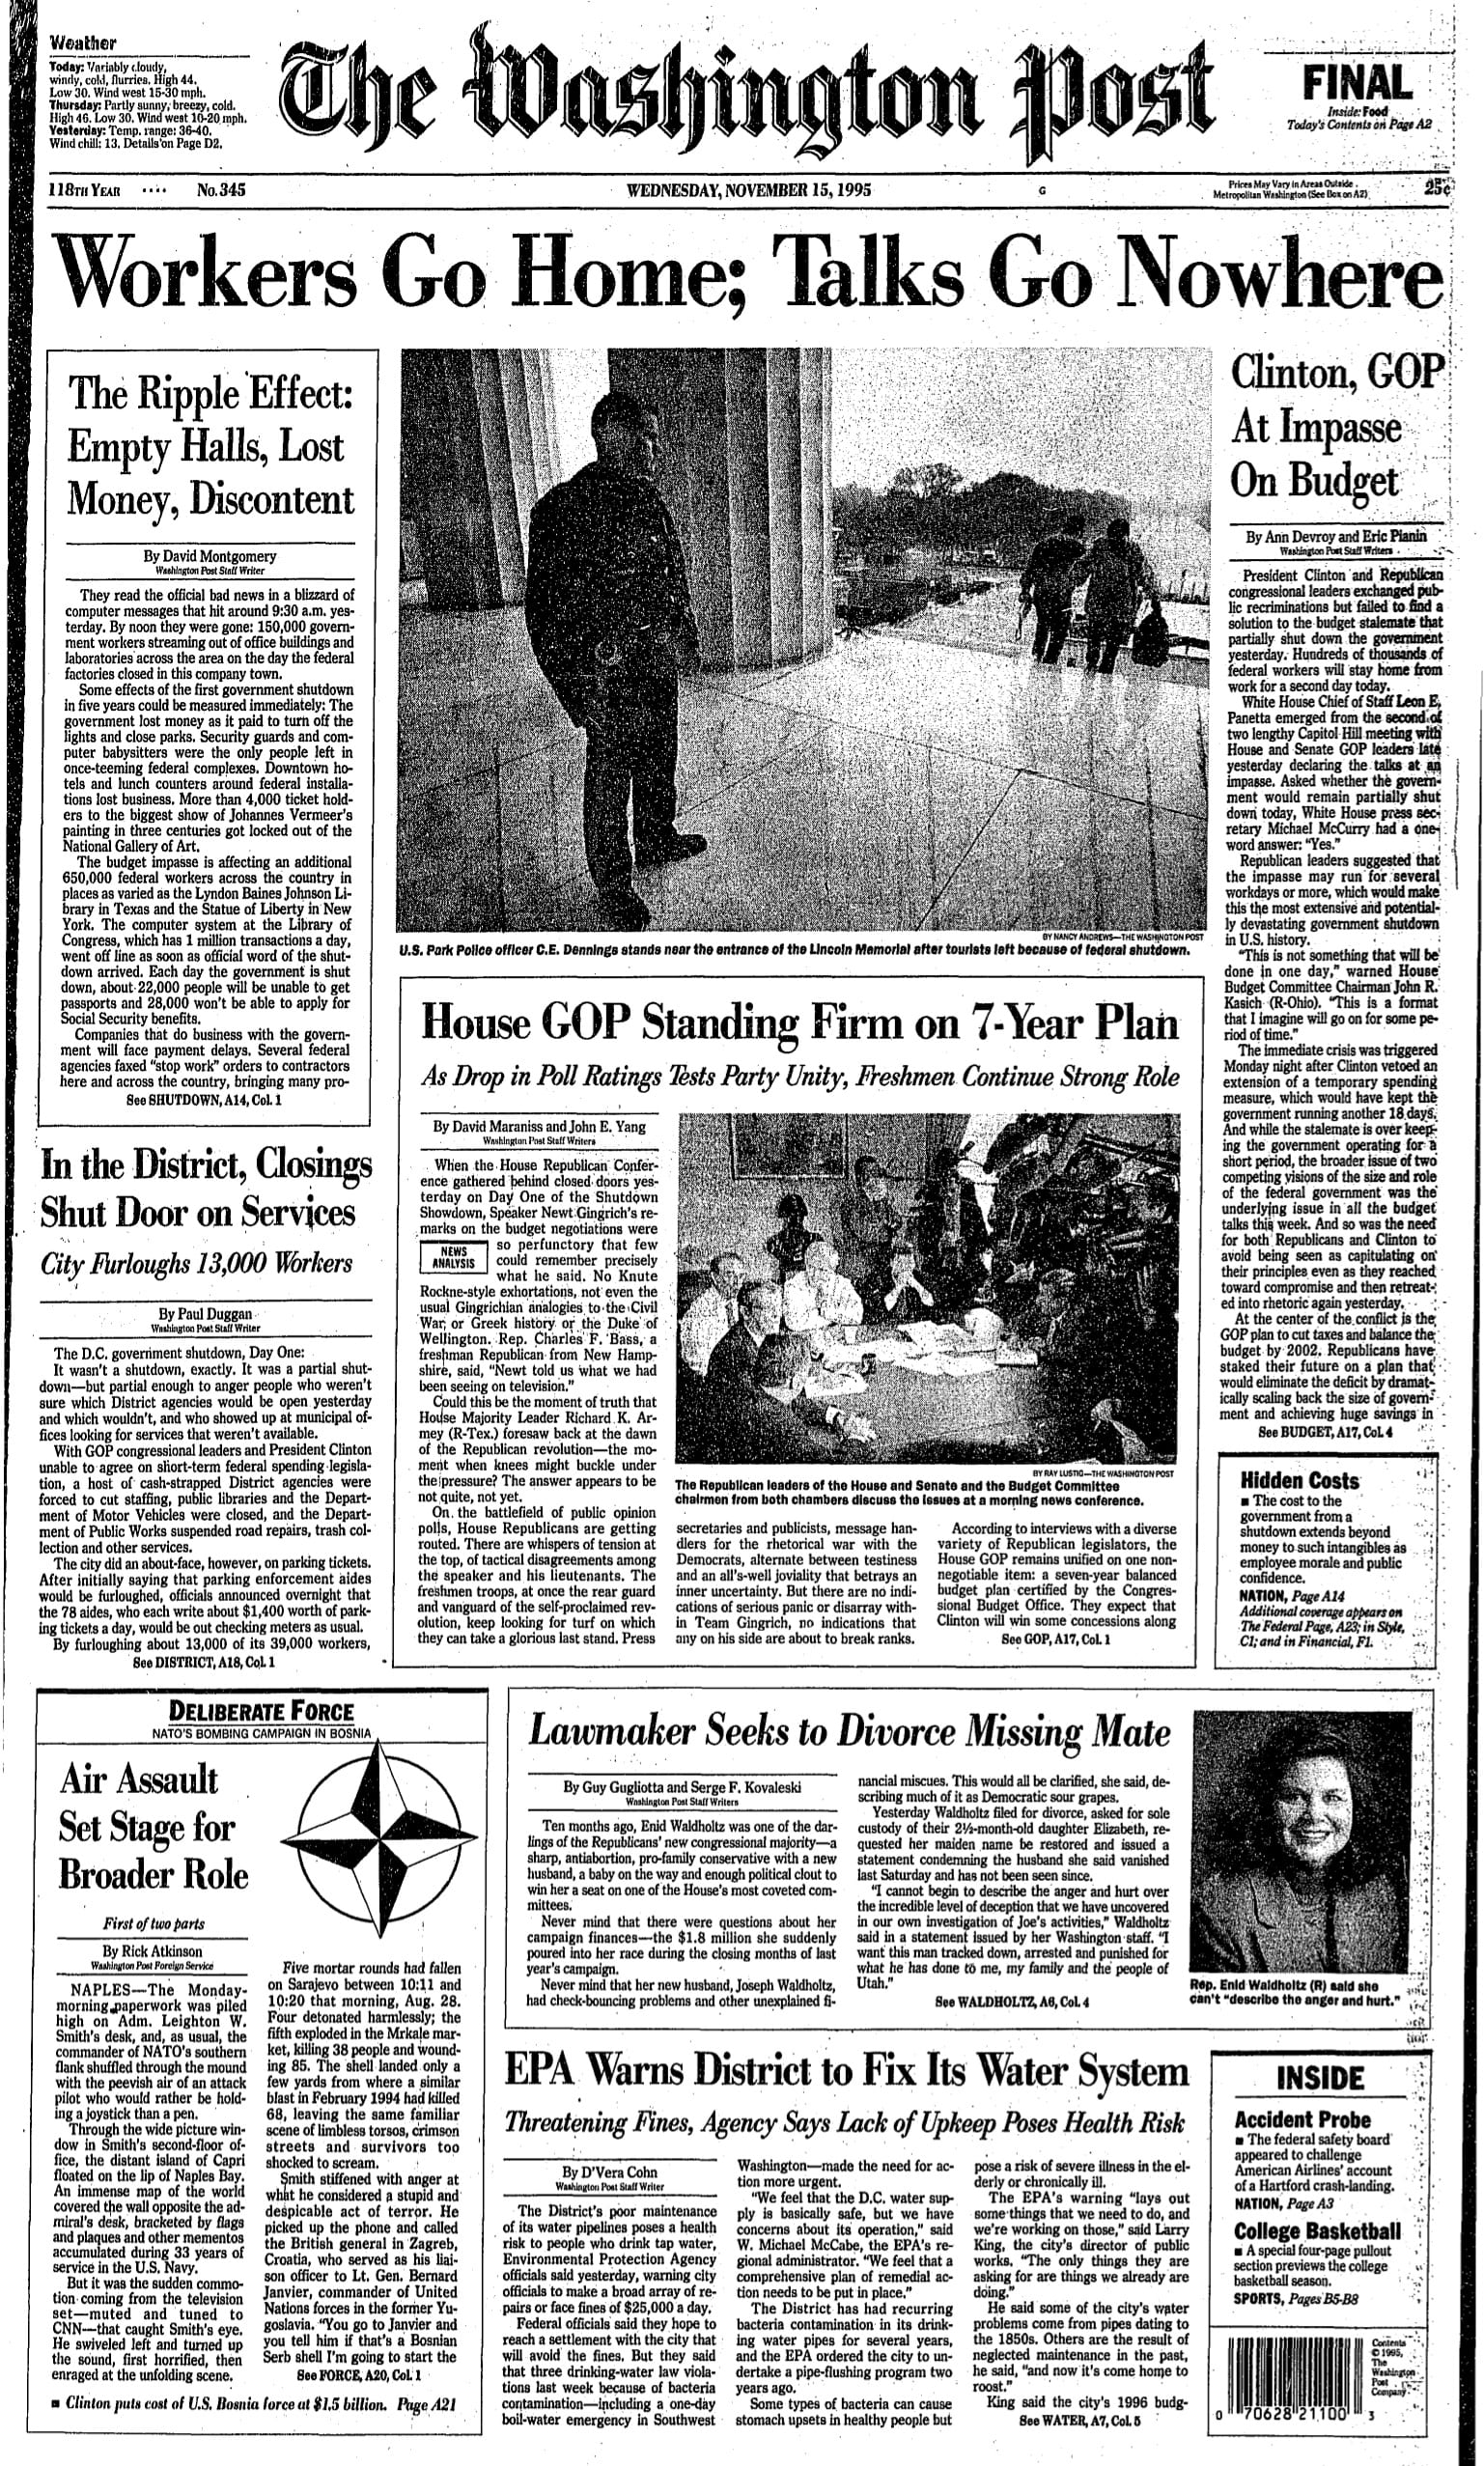 Washington Post front page - 11/15/95